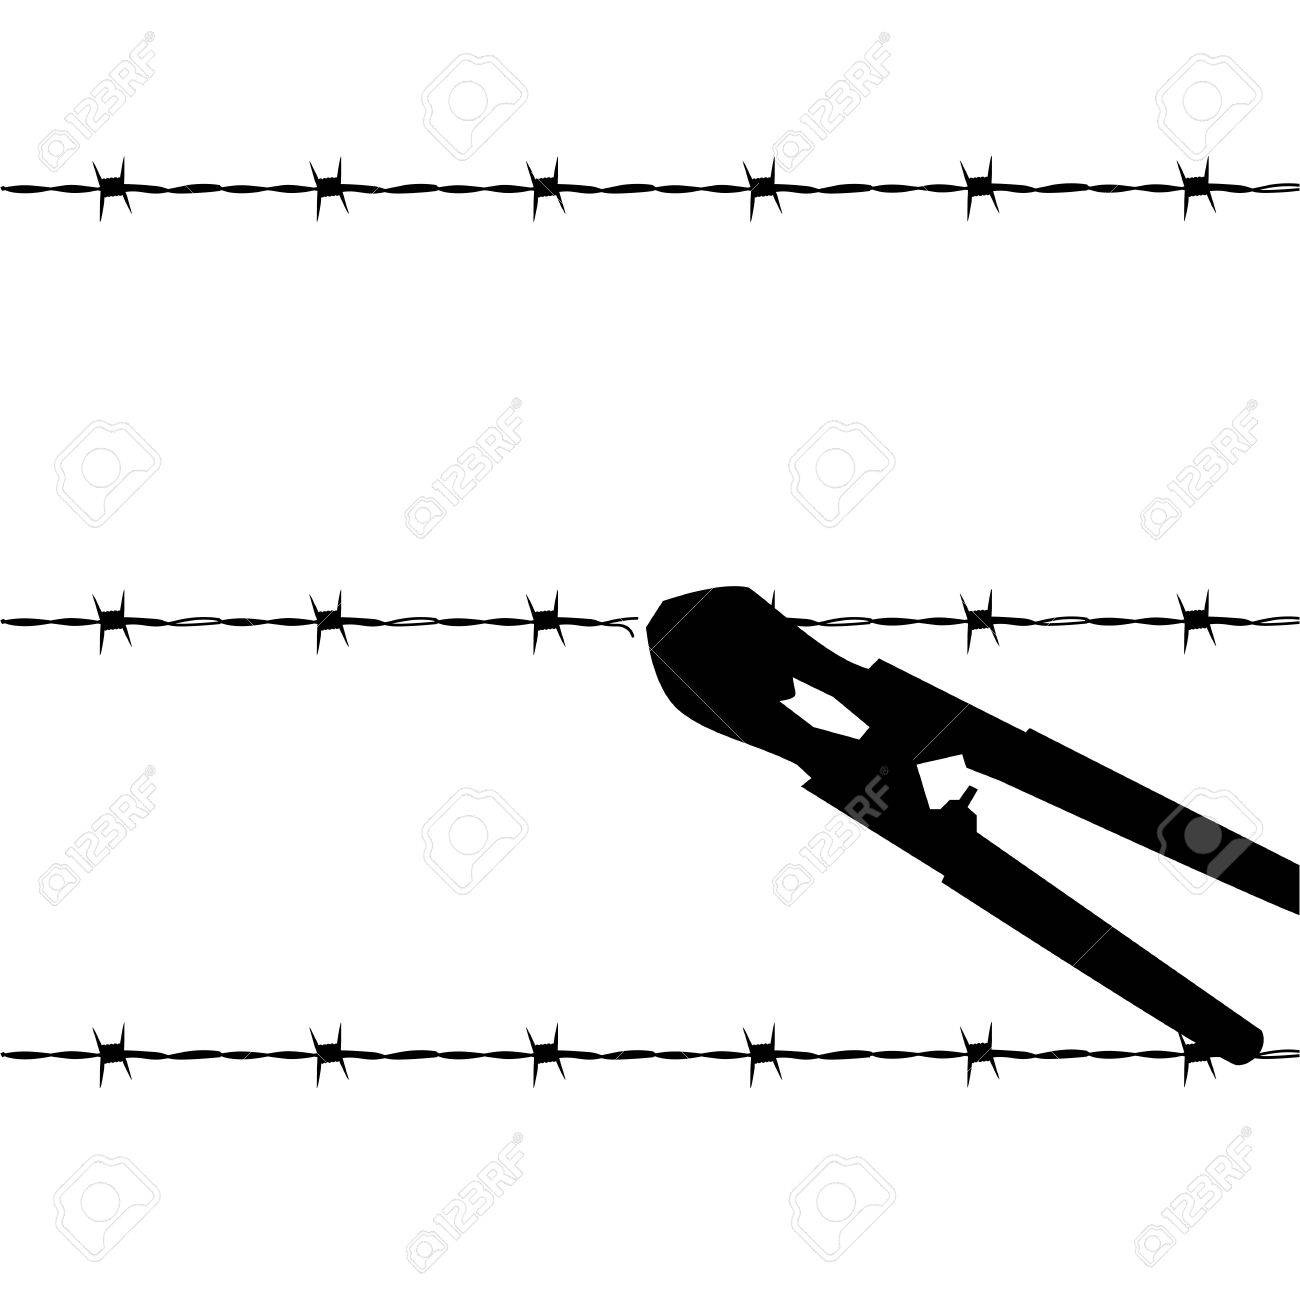 Cartoon Outline Illustration Showing A Barbed Wire Fence Being ...